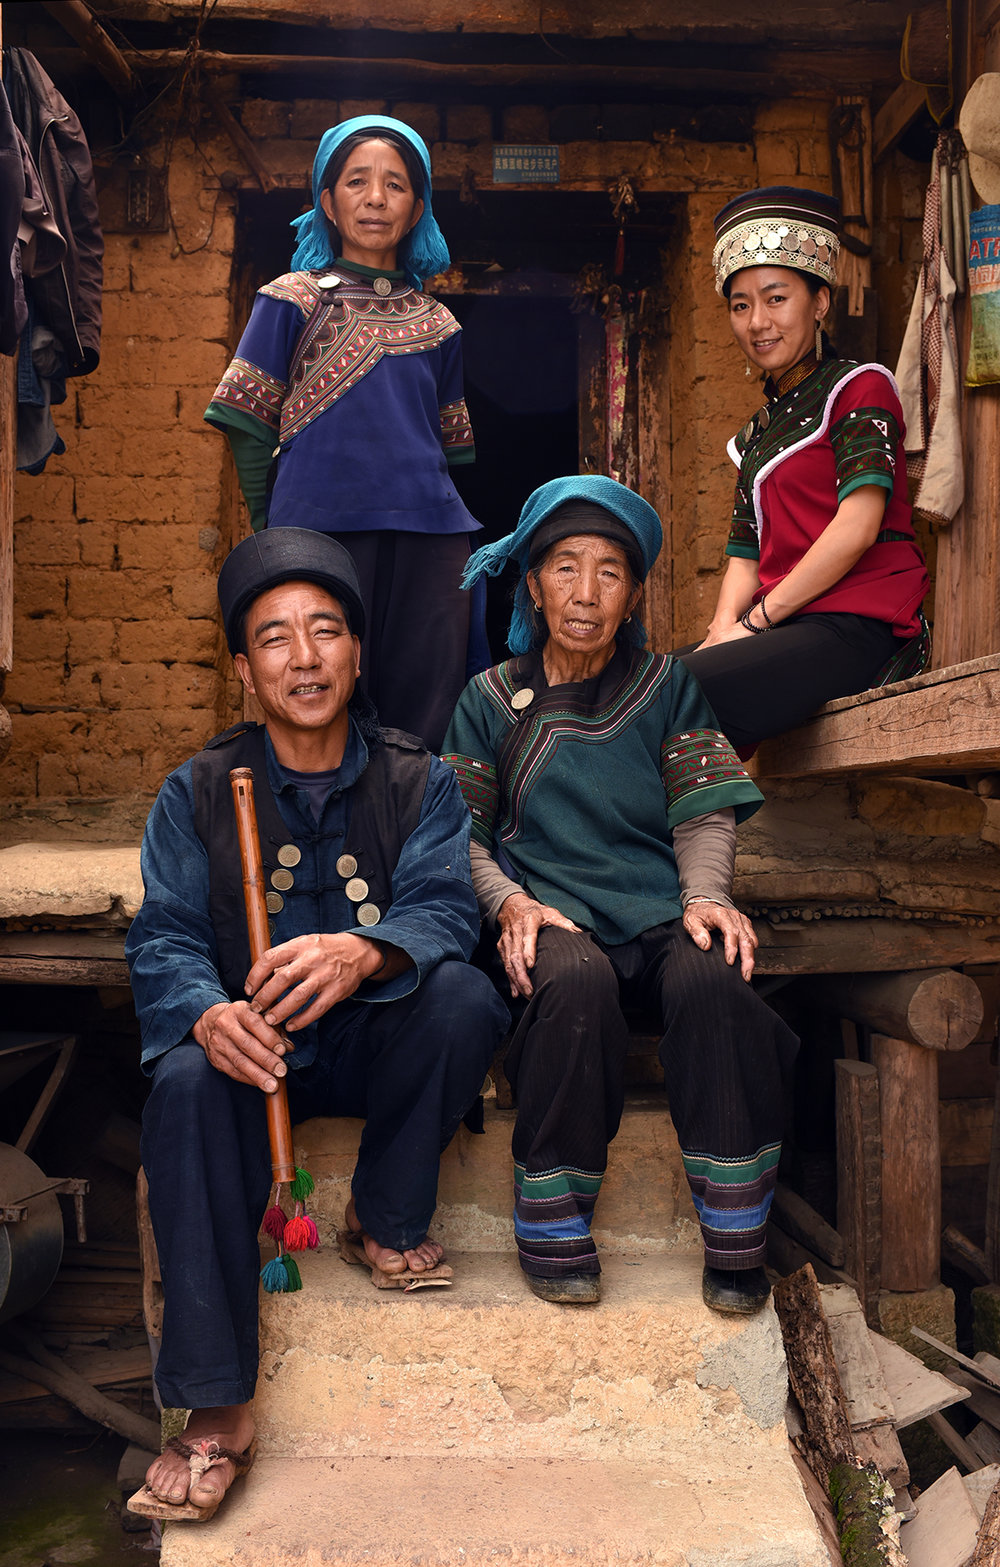 Chen XiNiang, inheritor of polyphonic singing intangible cultural heritage, at home with his family, Luomo village, Yunnan, 2017.